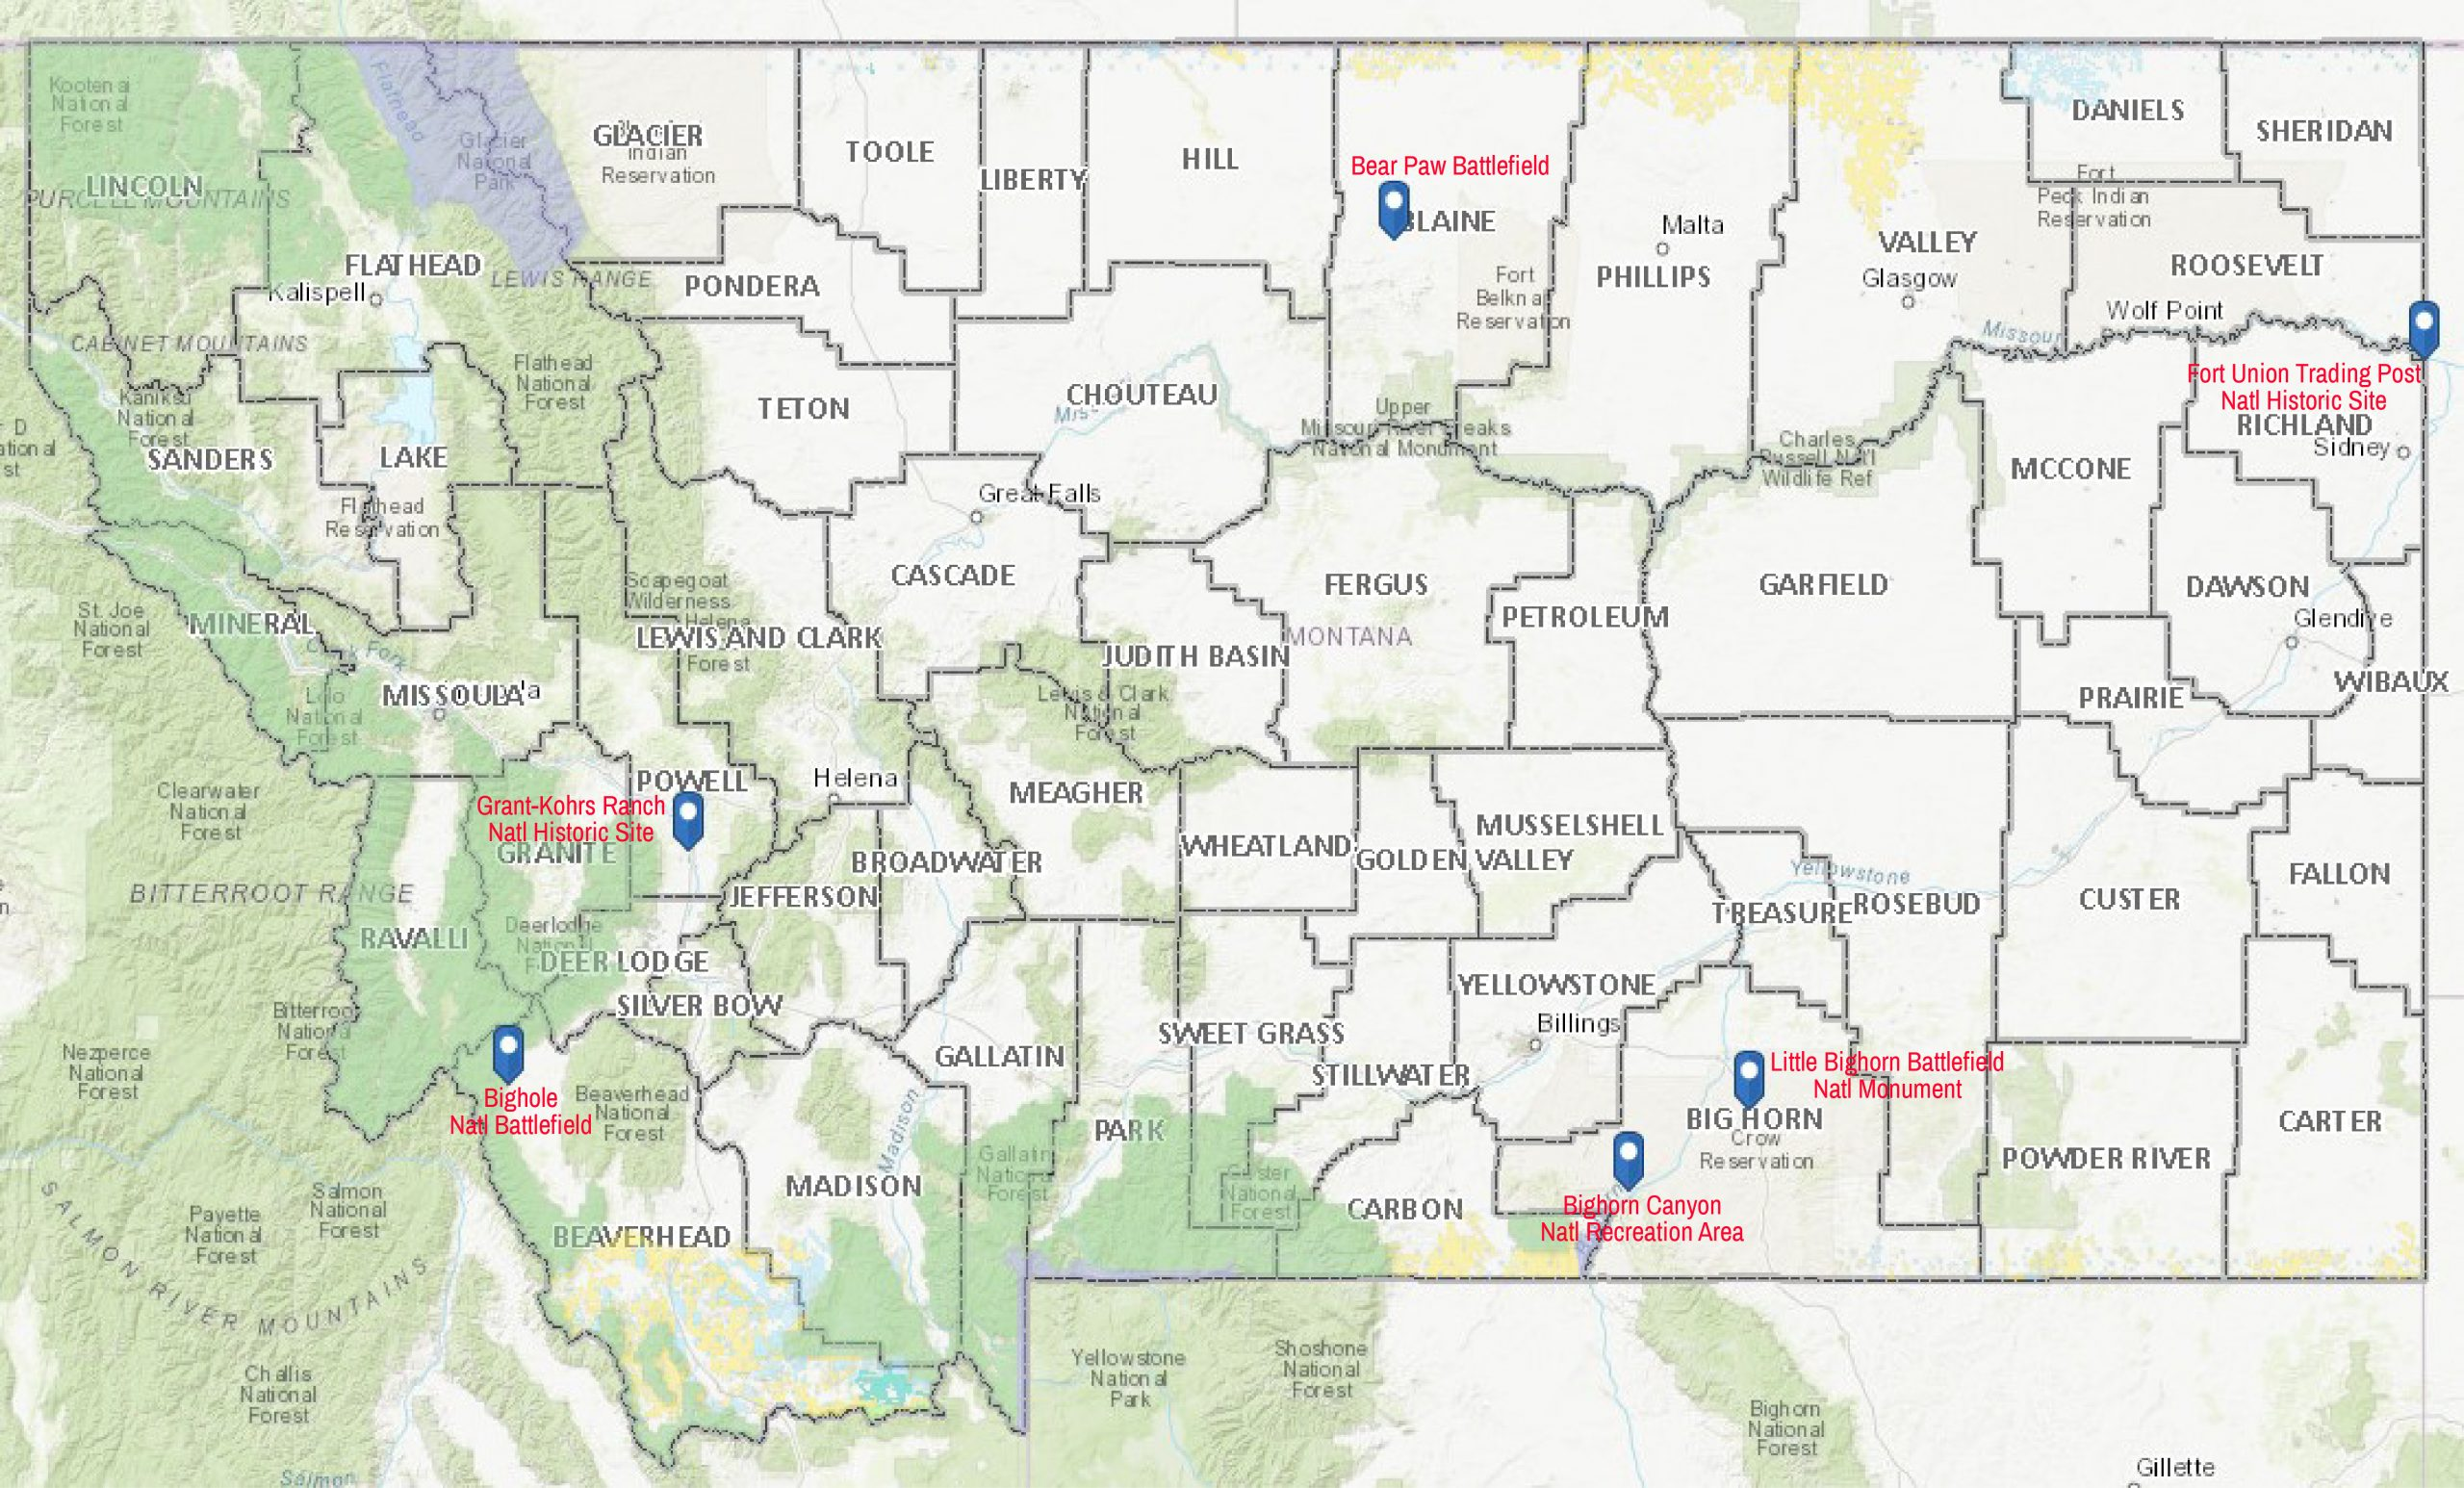 Natl Park Battlefields and Monuments